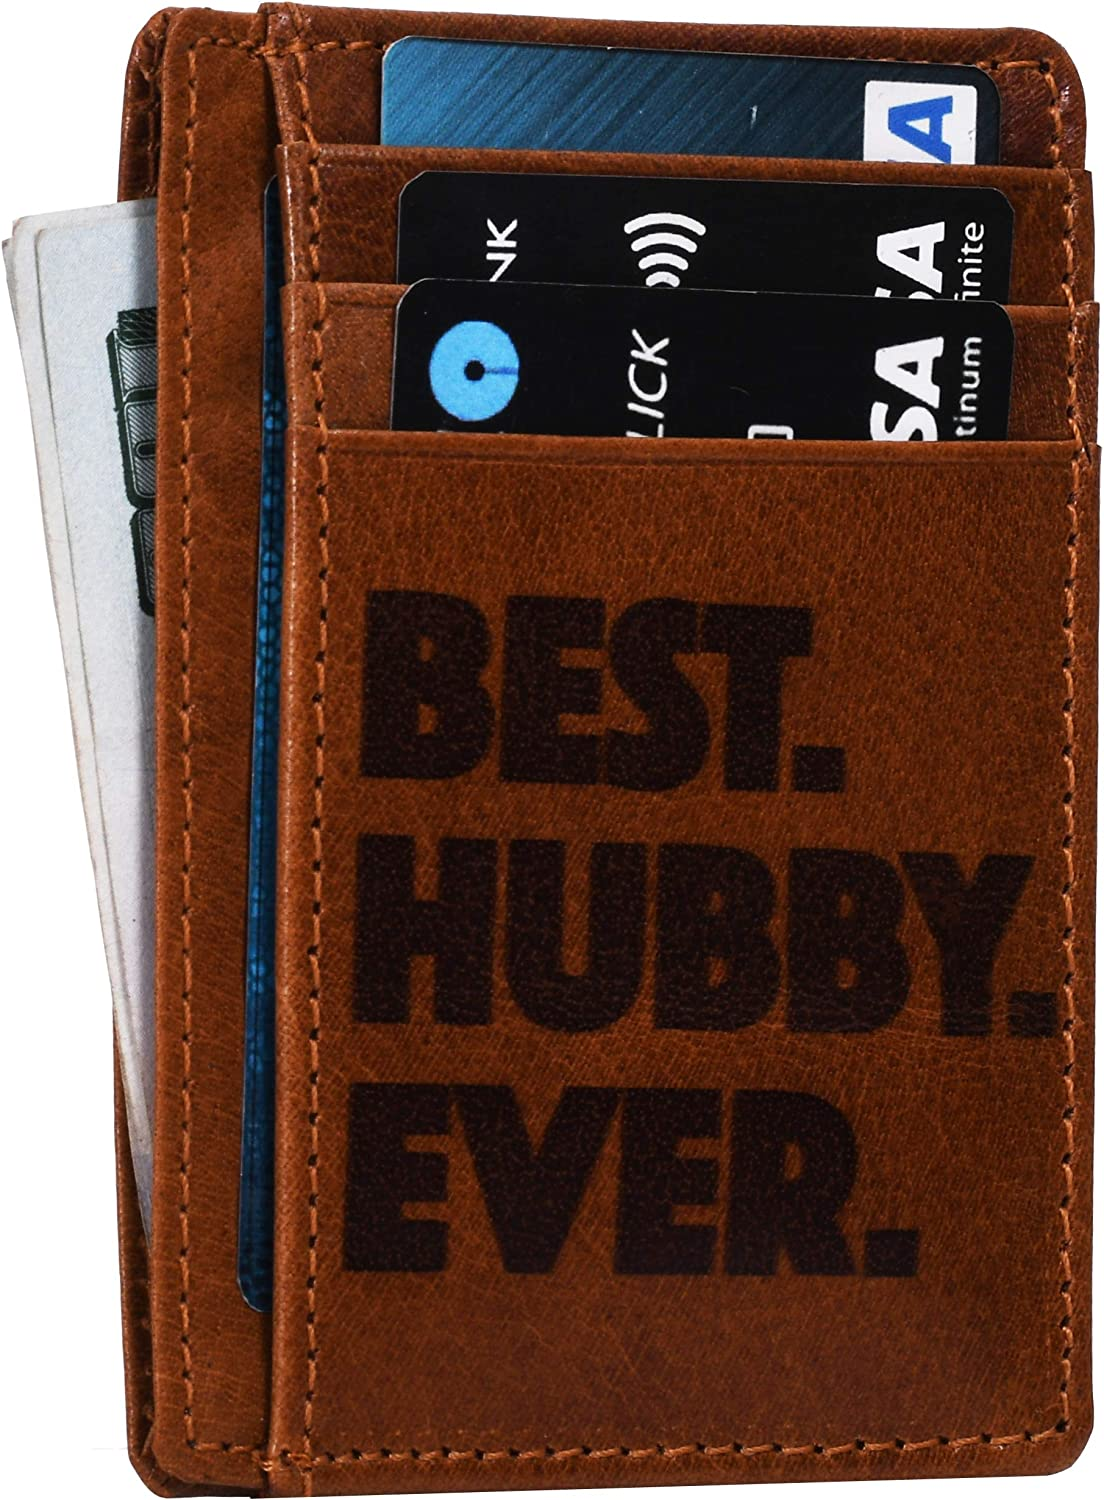 Engraved personalized Wife To Husband Father Mother Son Gift Best Anniversary Valentines Birthday Gifts Slim Wallet